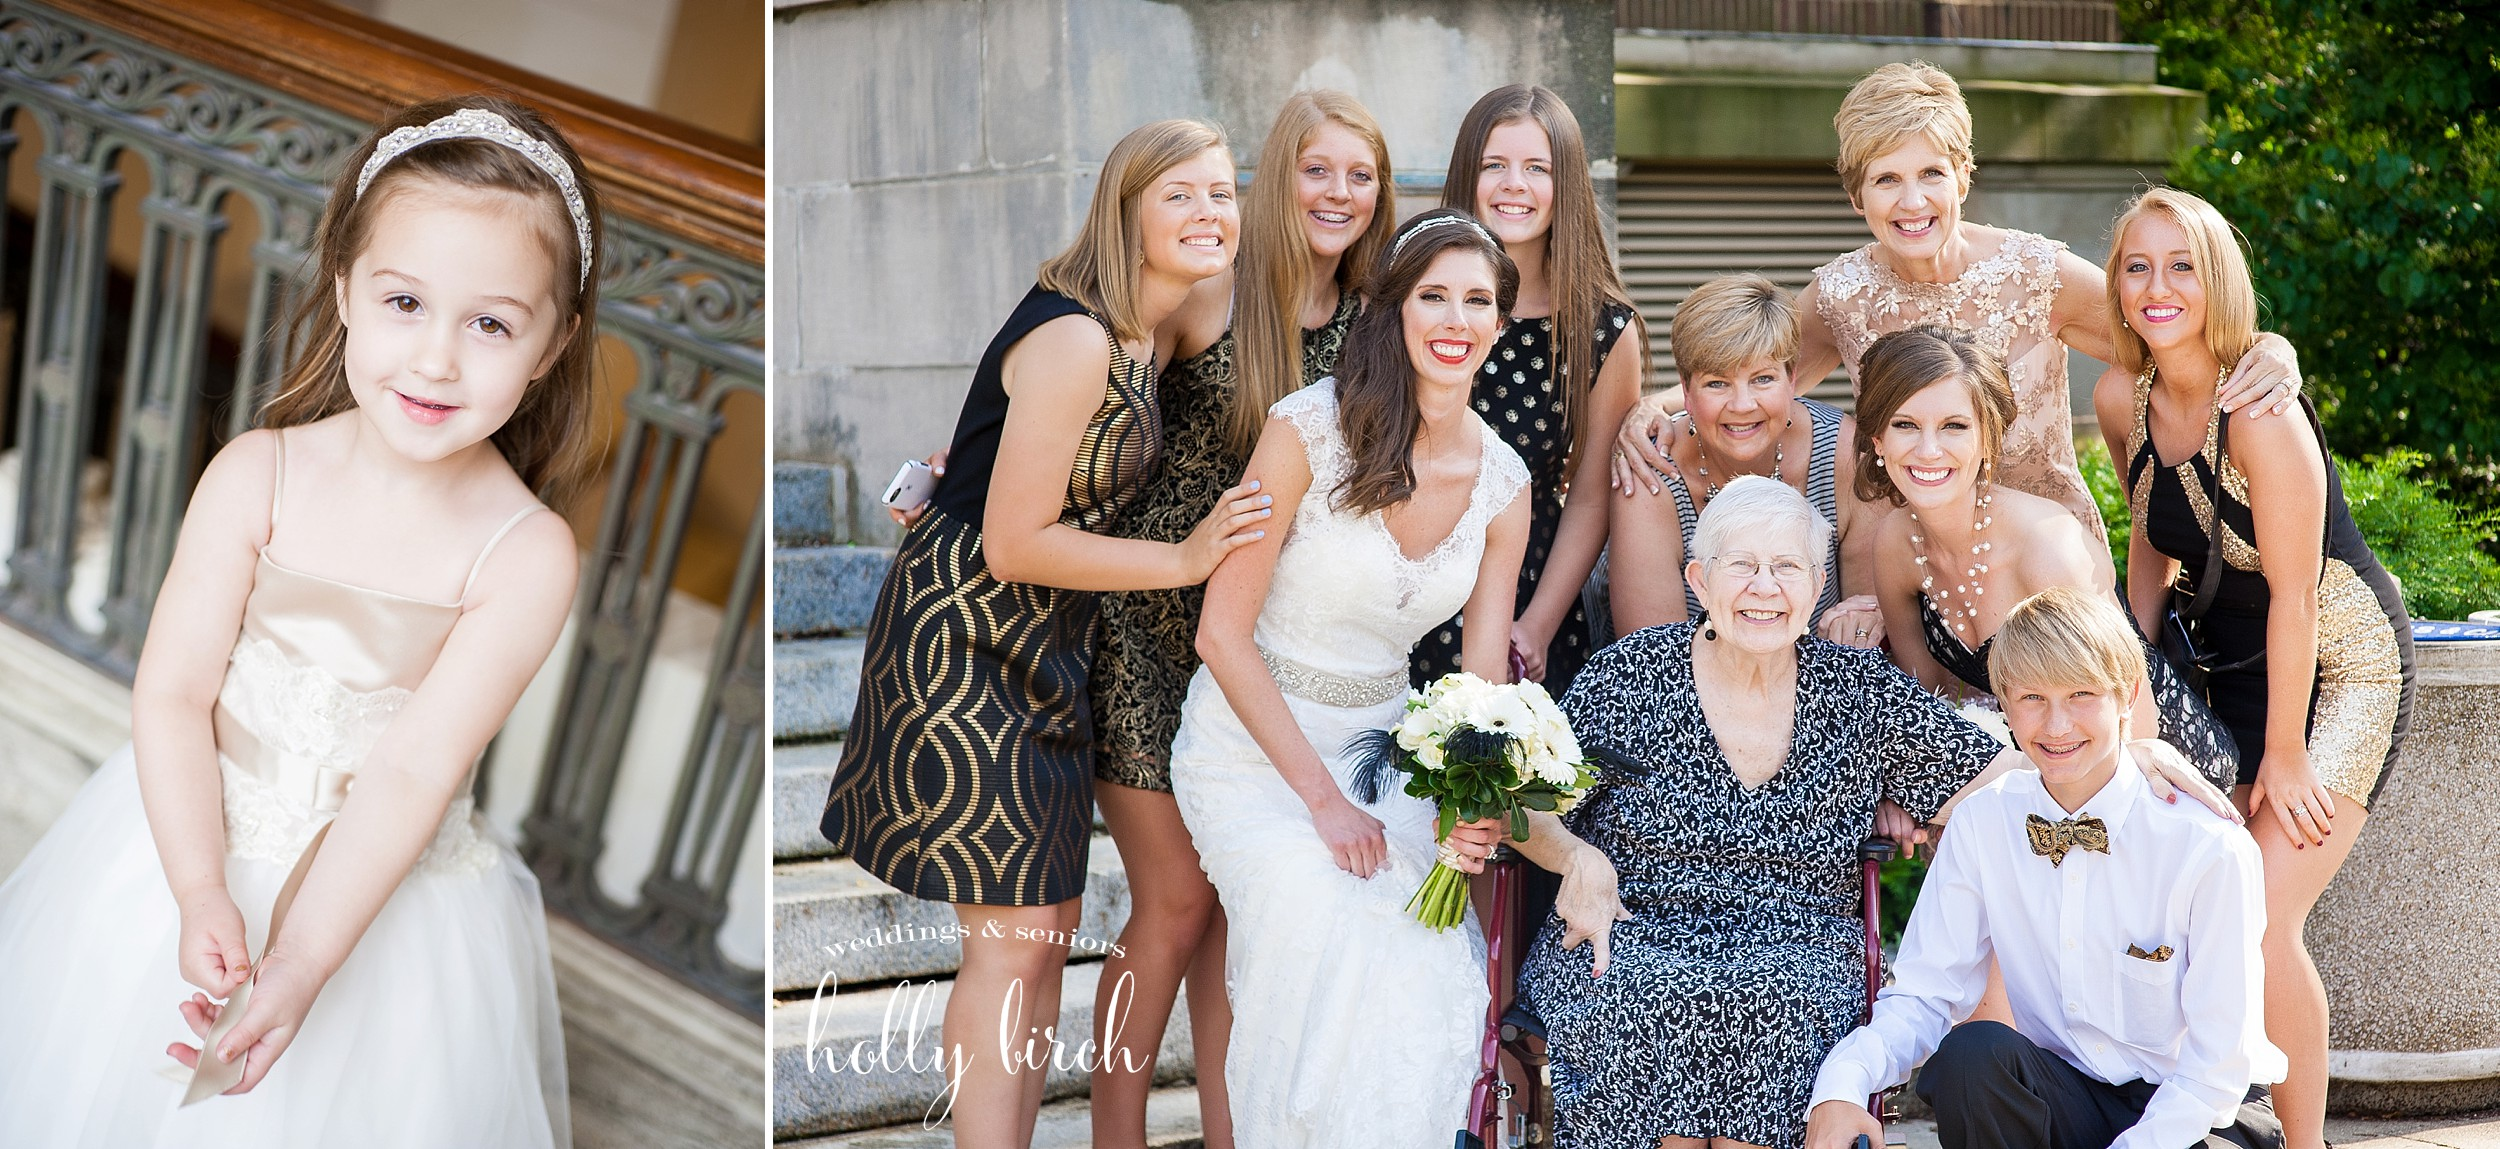 family generations wedding portrait